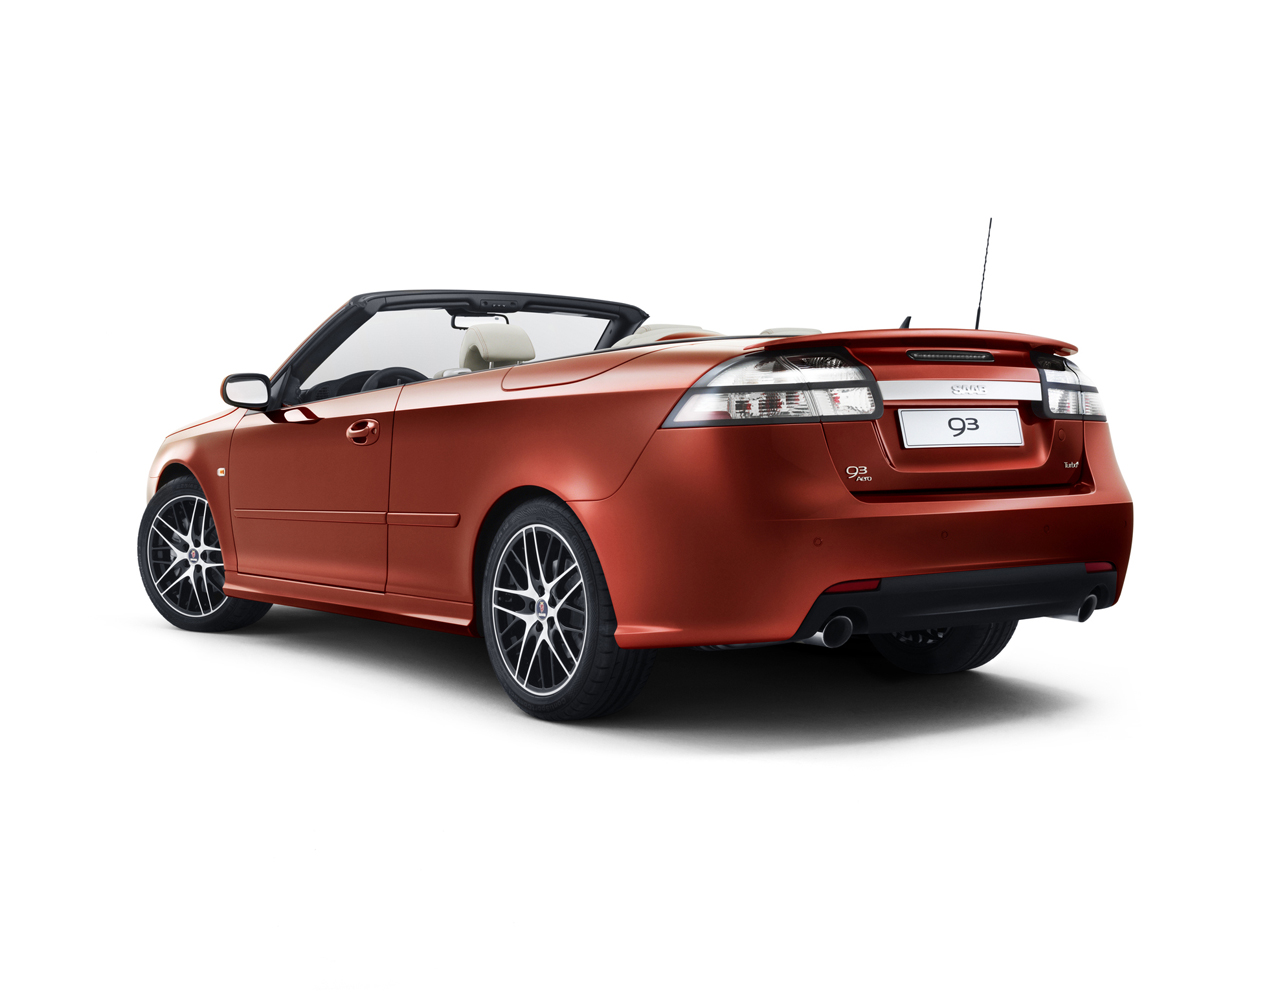 2012 saab 9 3 convertible car review and specification. Black Bedroom Furniture Sets. Home Design Ideas